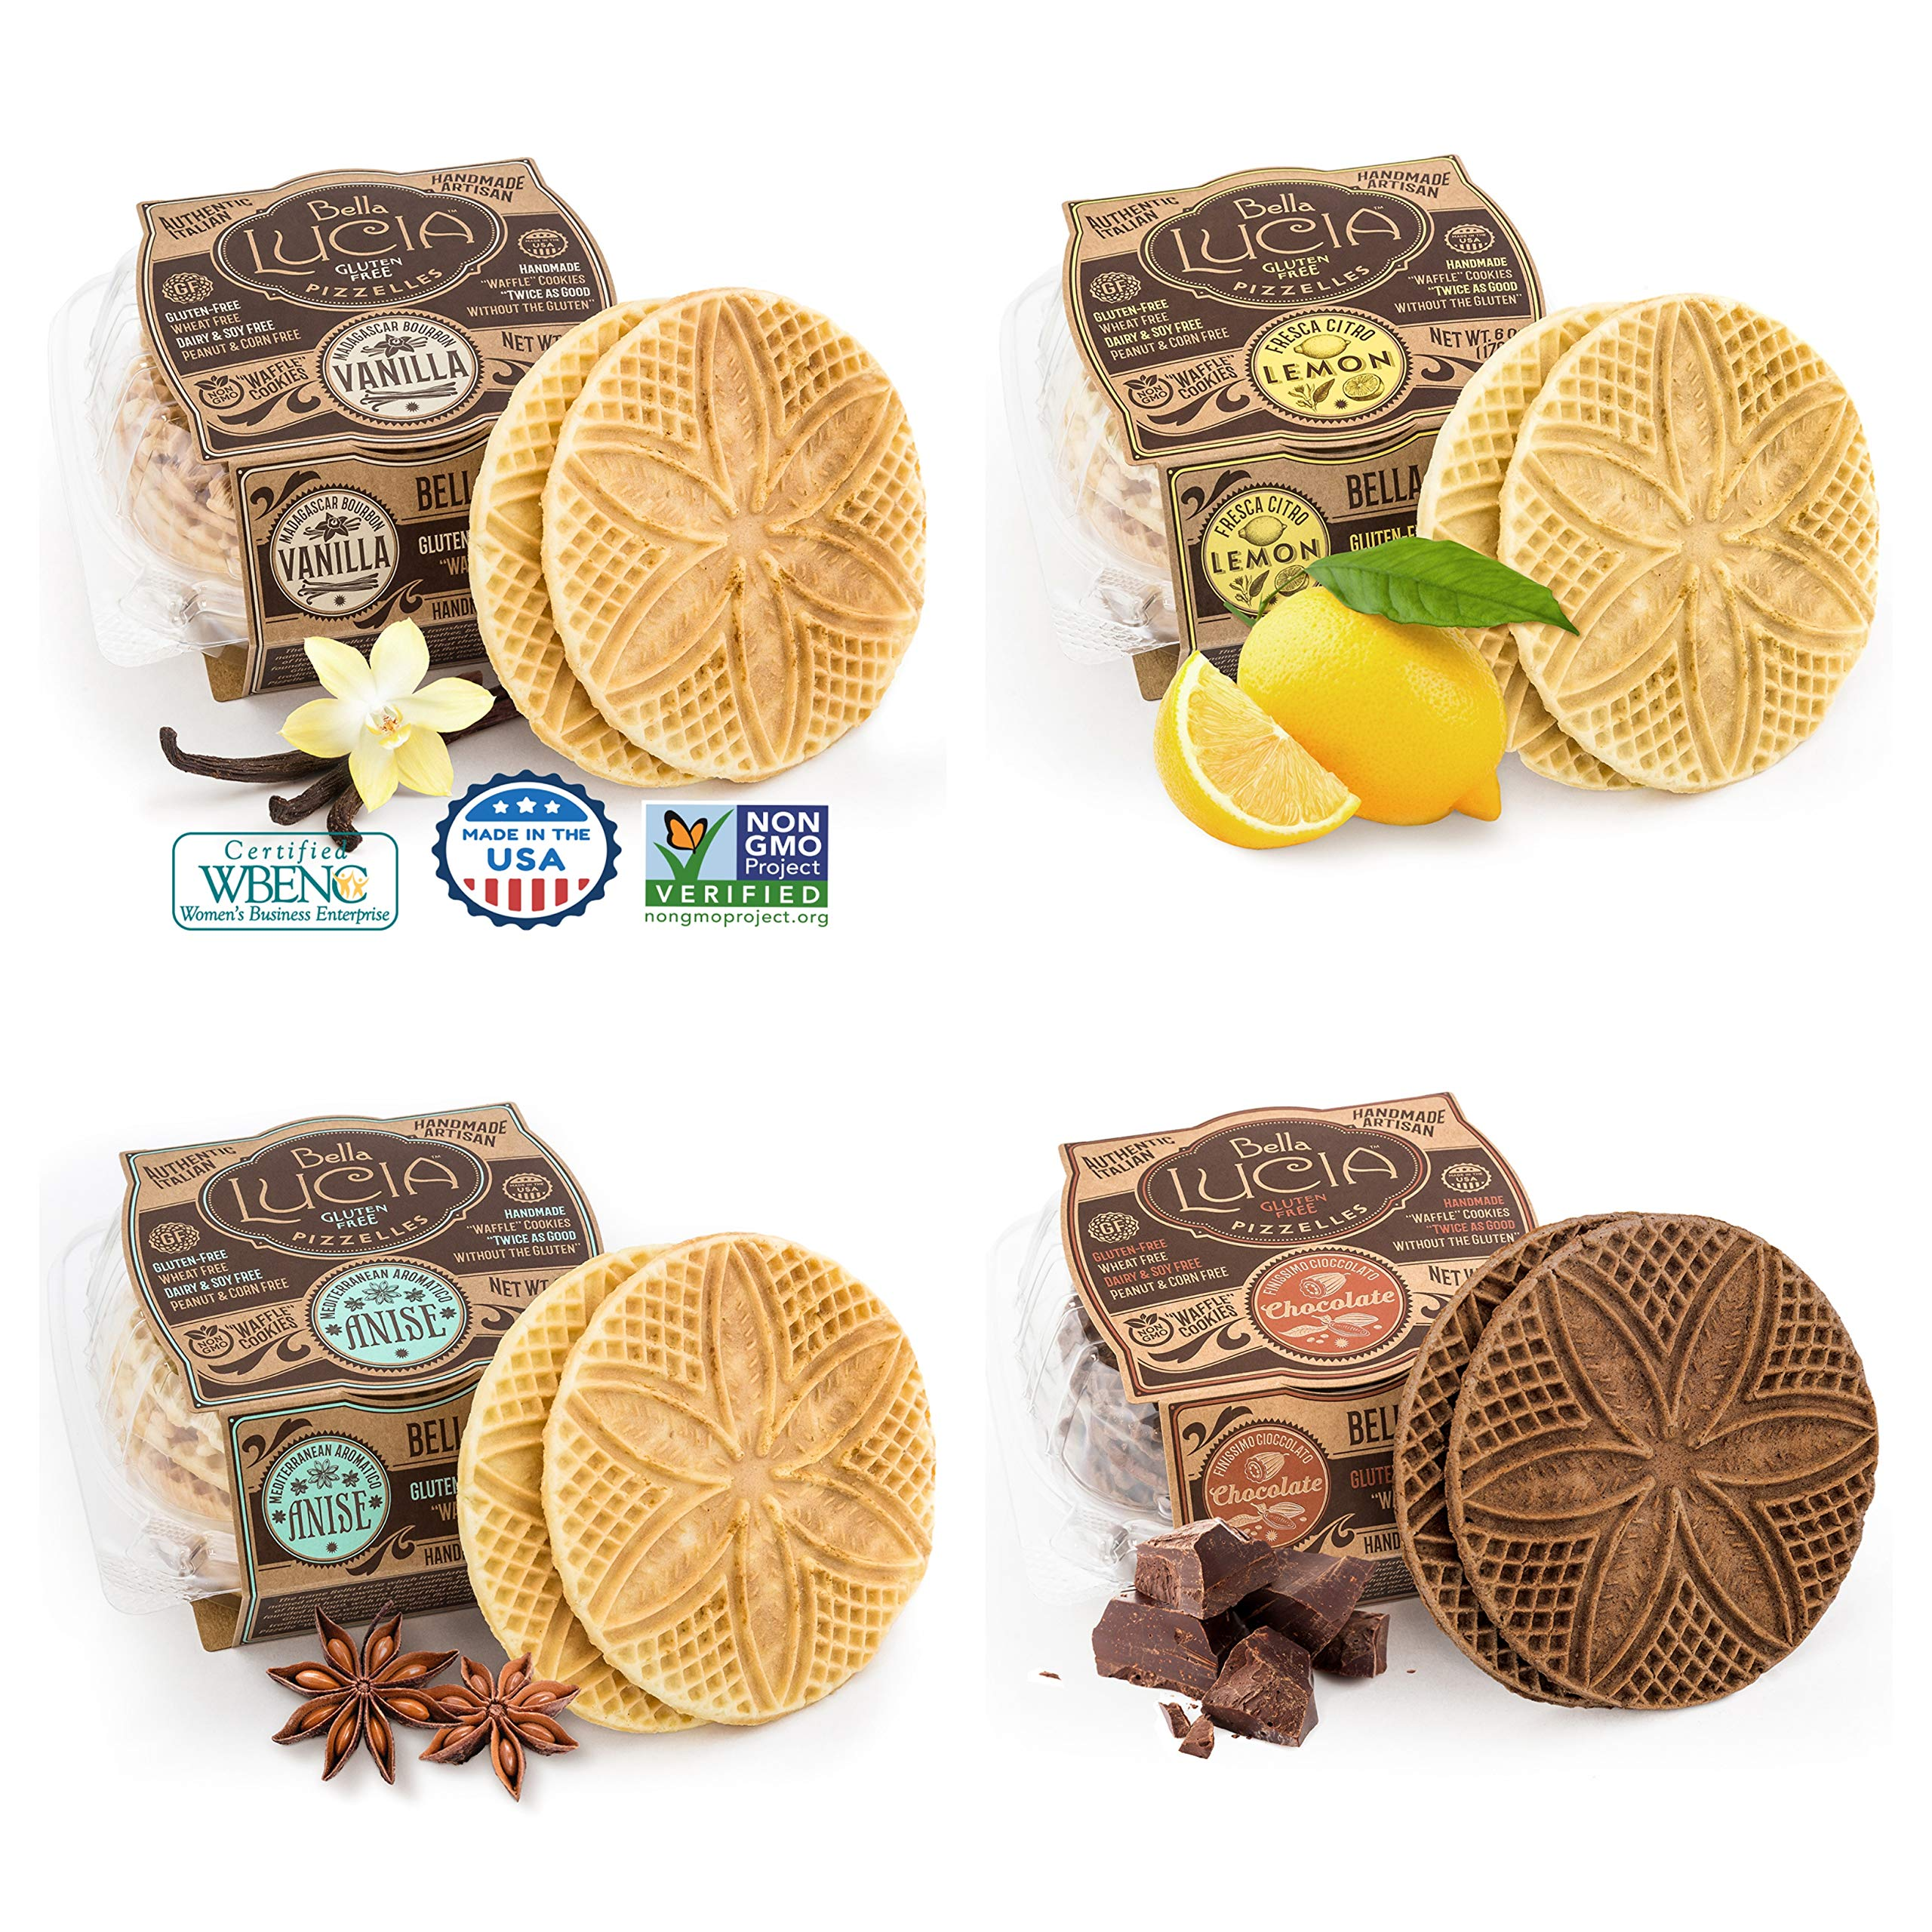 Bella Lucia Gluten-Free, Nut Free, Soy Free Non-GMO Verified, Pizzelle Cookies 6 ounce (pack of 4), Variety Pack, Vanilla, Anise, Lemon, and Chocolate